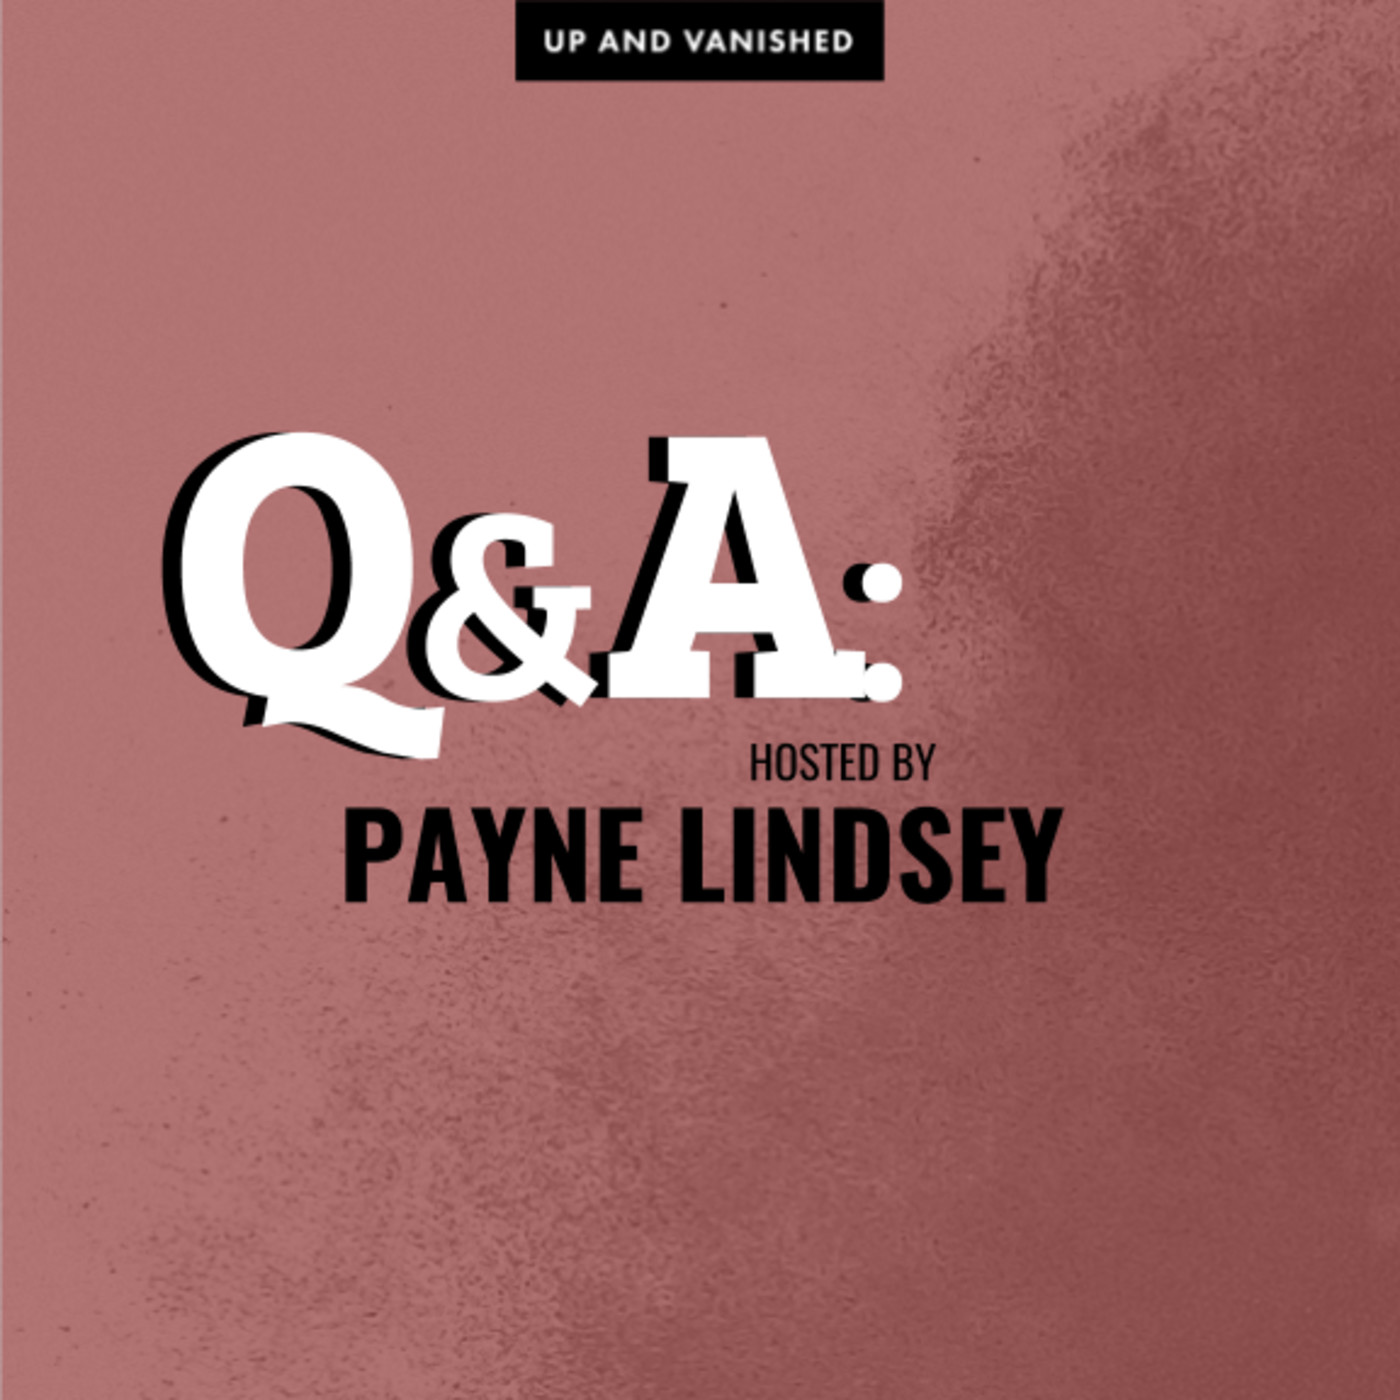 S1E : Q&A with Payne Lindsey 03.02.17